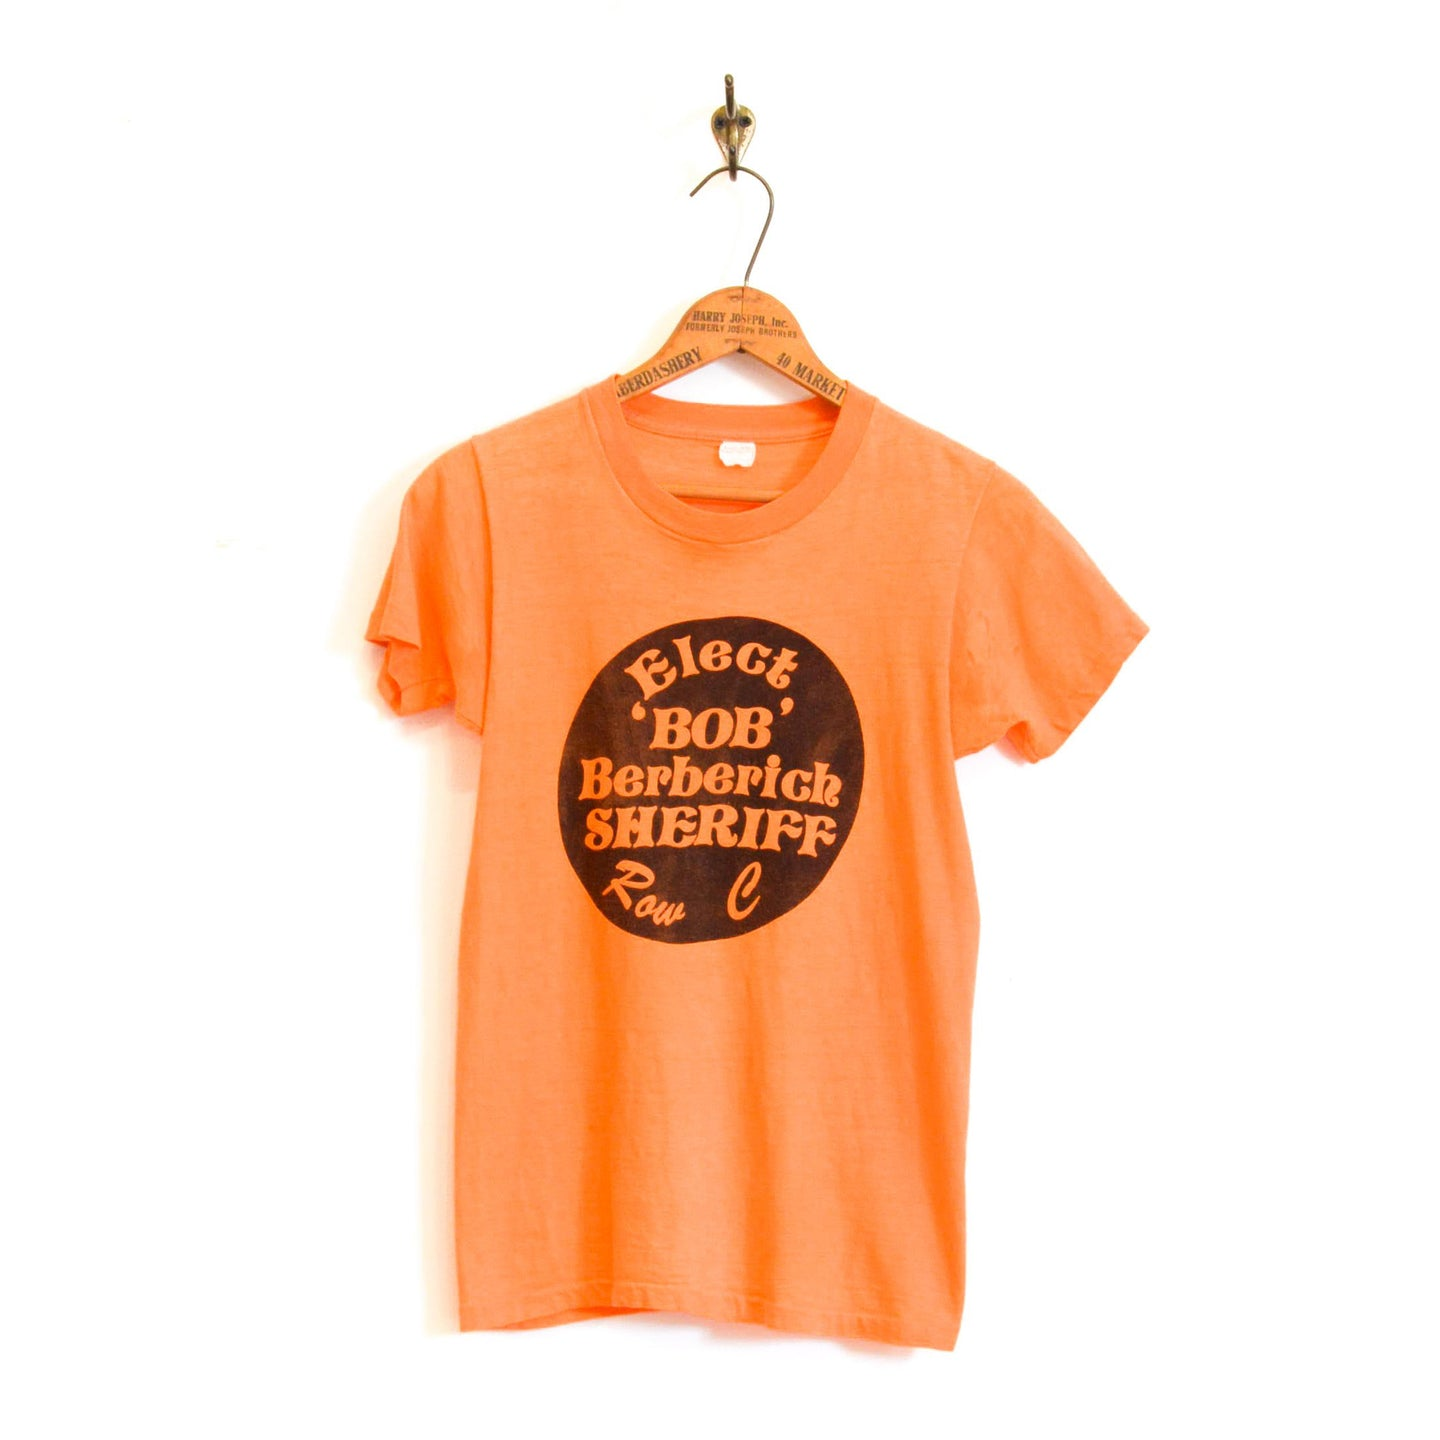 Fruits of the Loom - Local Campaign Tee Shirt